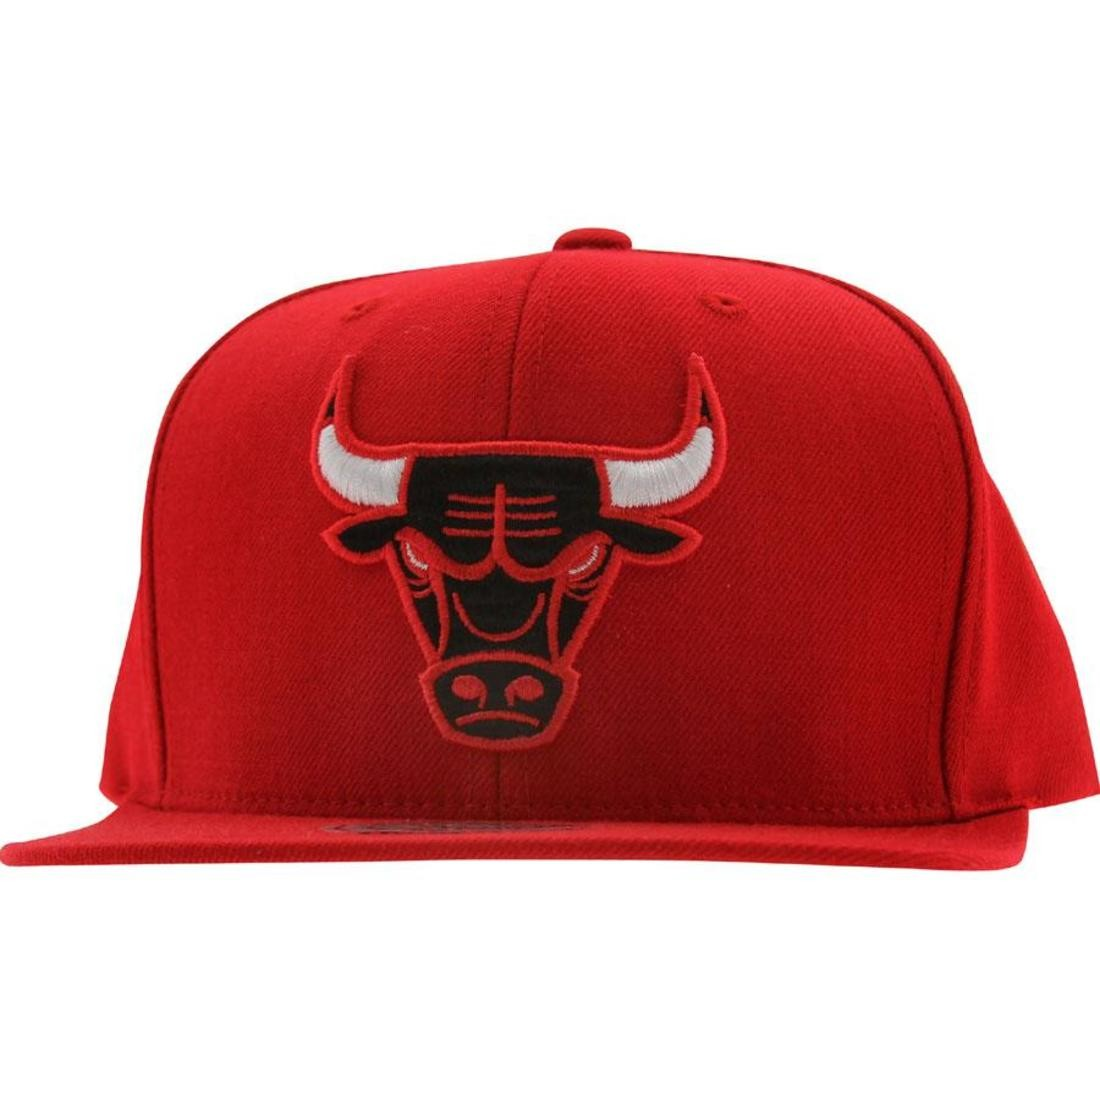 77c184730de Mitchell And Ness Chicago Bulls NBA Wool Solid Snapback Cap (red)